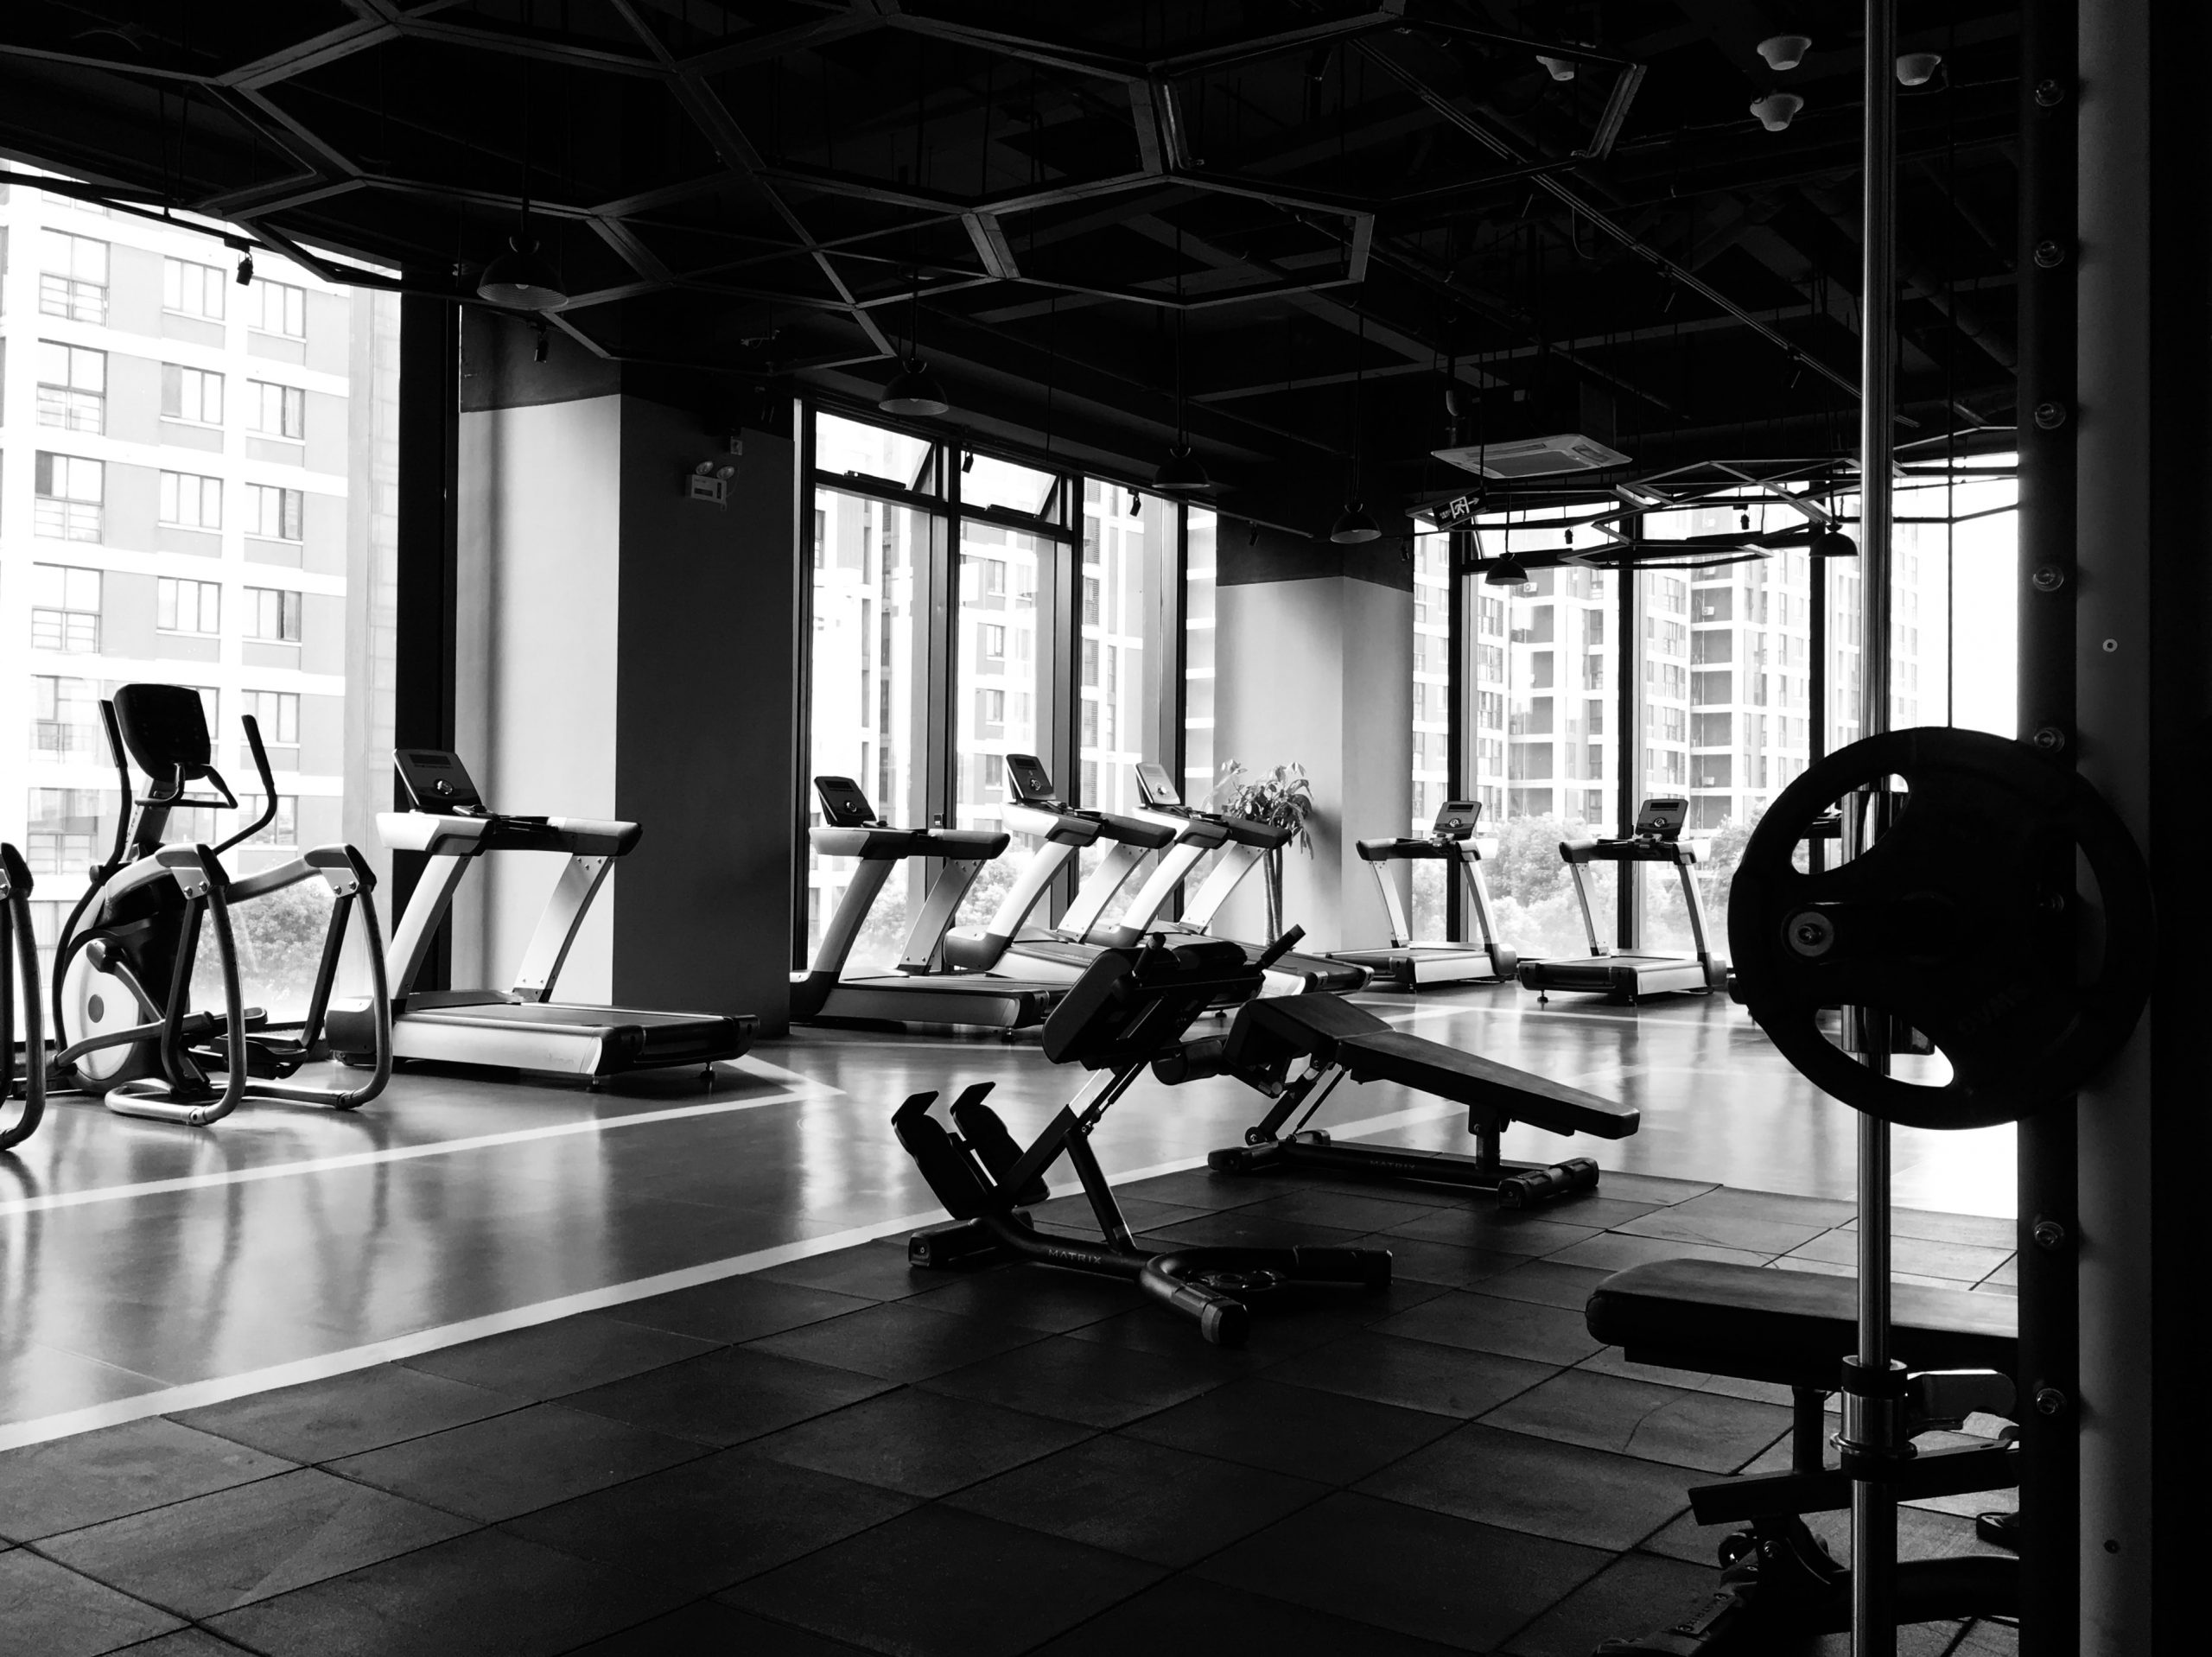 A black-and-white photo of a gym.